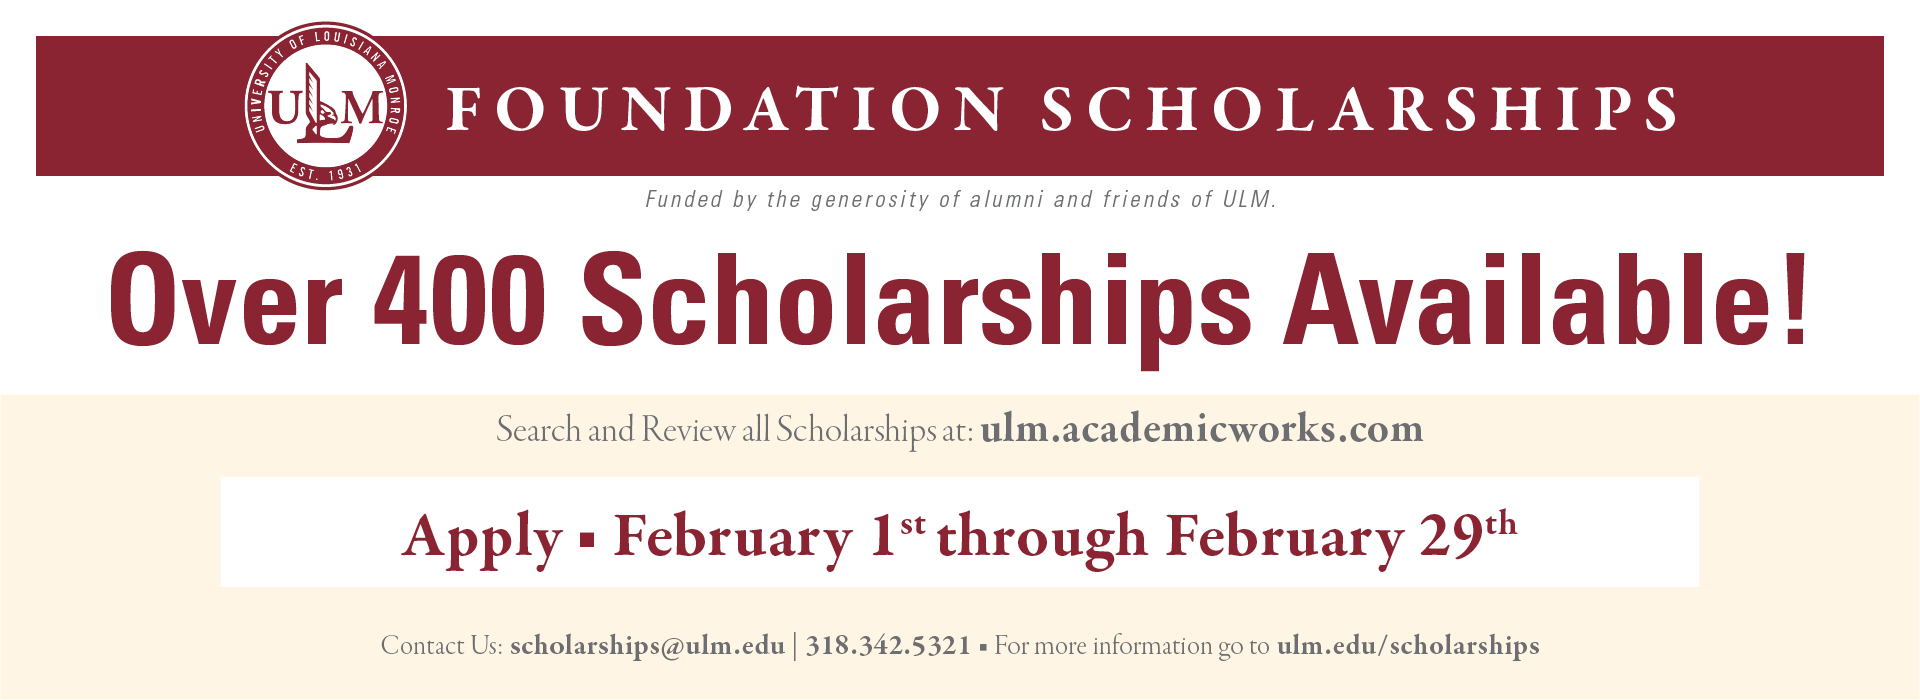 ULM Foundation Scholarships 2020 banner ad